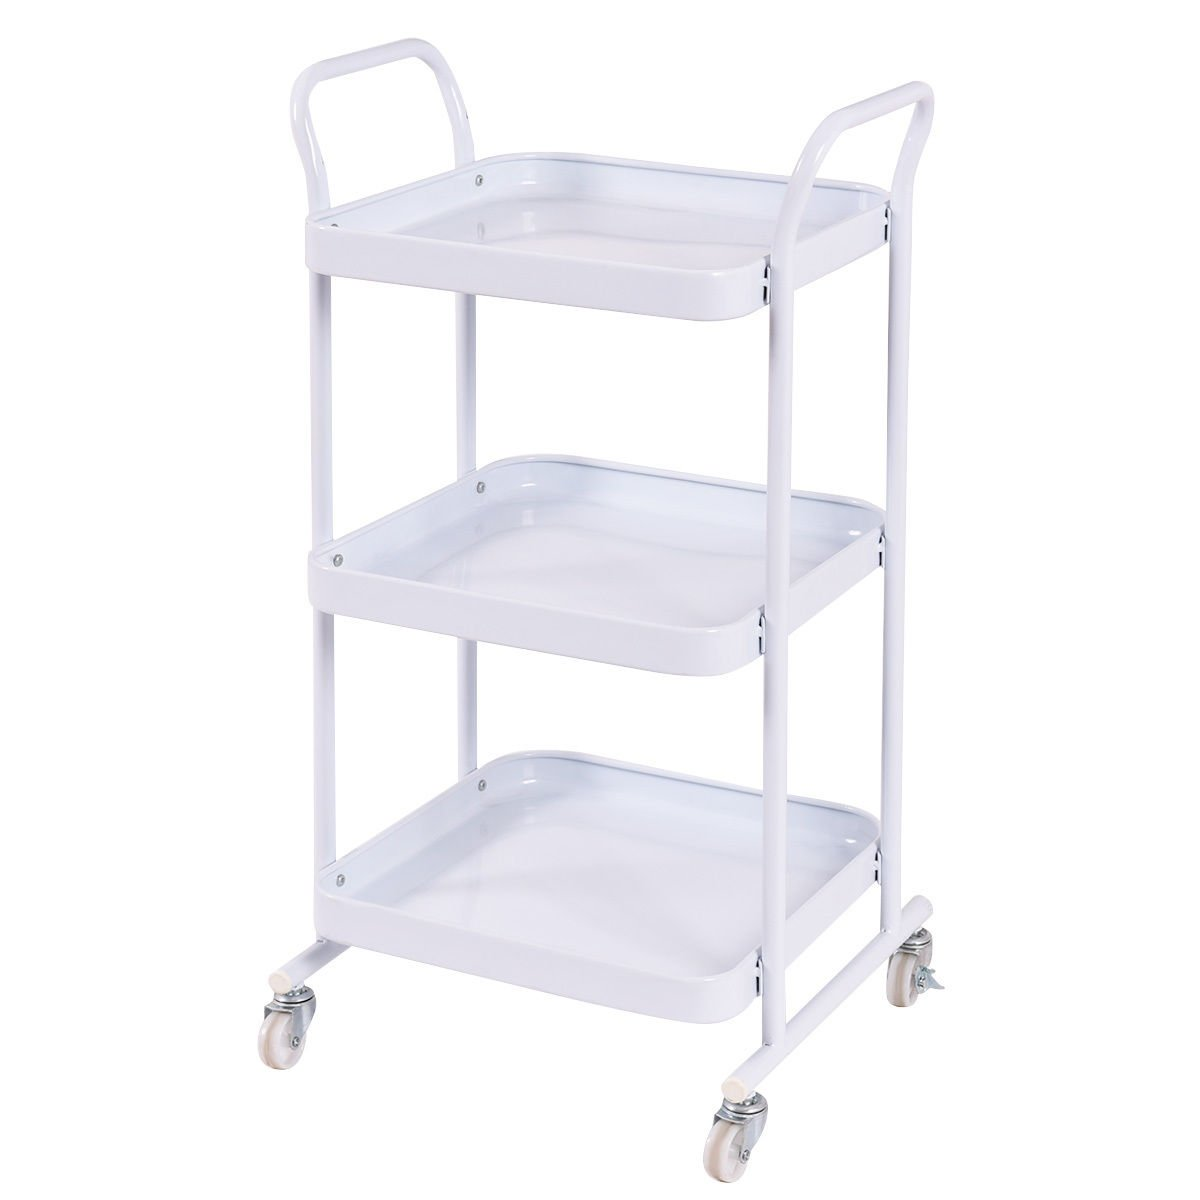 3 Tier Kitchen Island Serving Cart, Sturdy Steel Construction, 2 Lockable Casters, Functional, Suitable Dining Room, Catering, White Color + Expert Guide